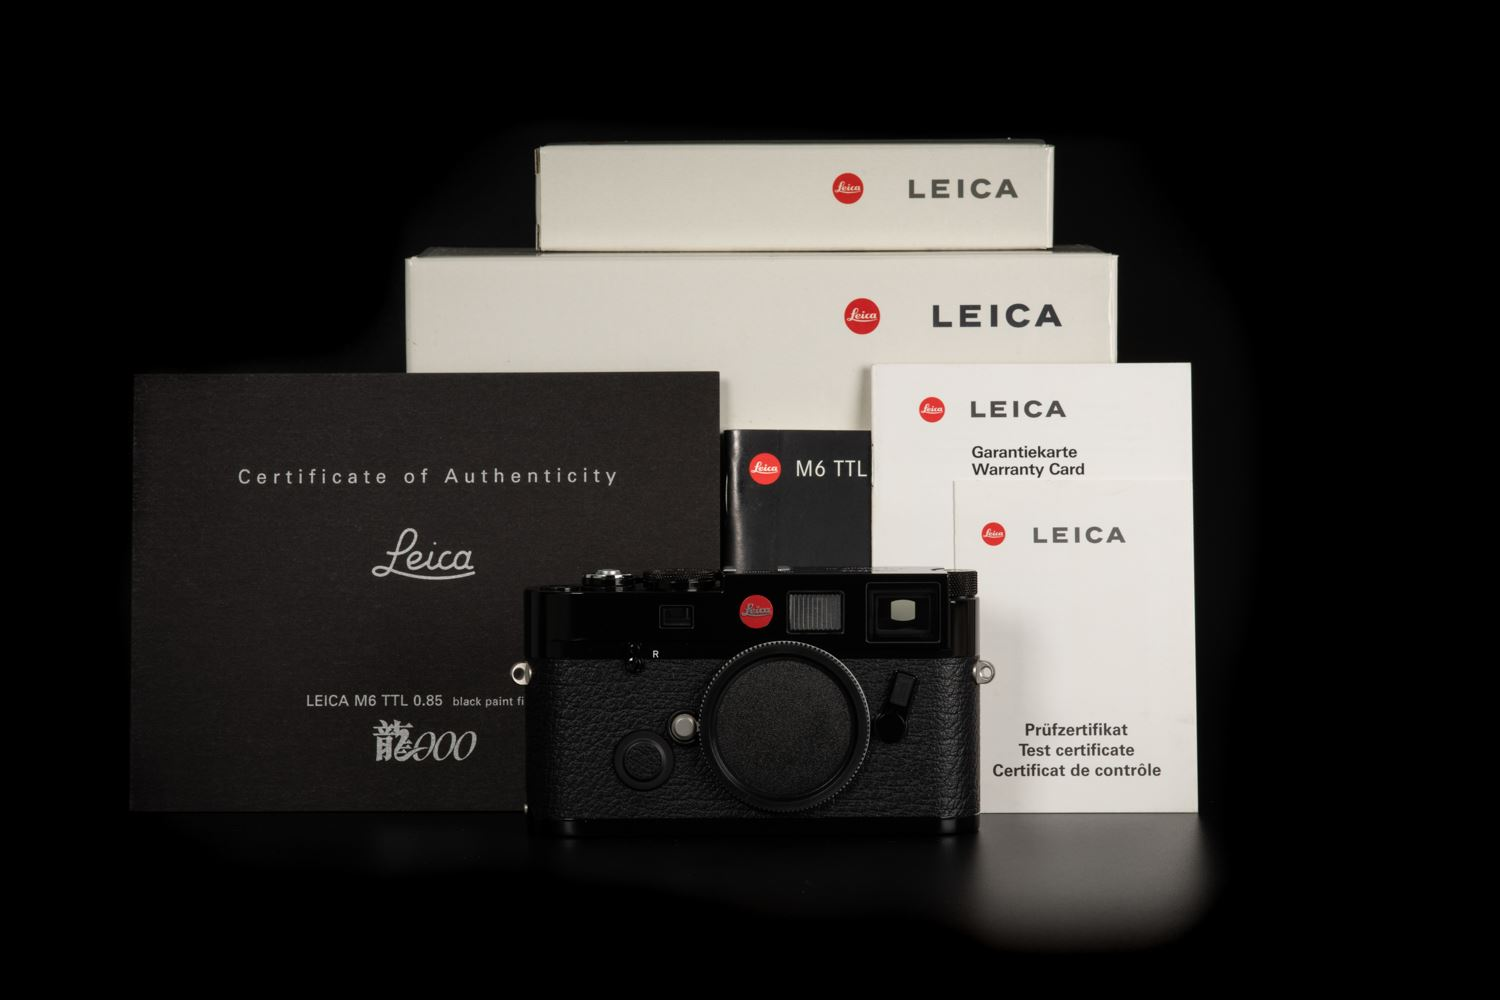 Picture of Leica M6 TTL 0.85 Black Paint 'Dragon 2000' Limited Edition